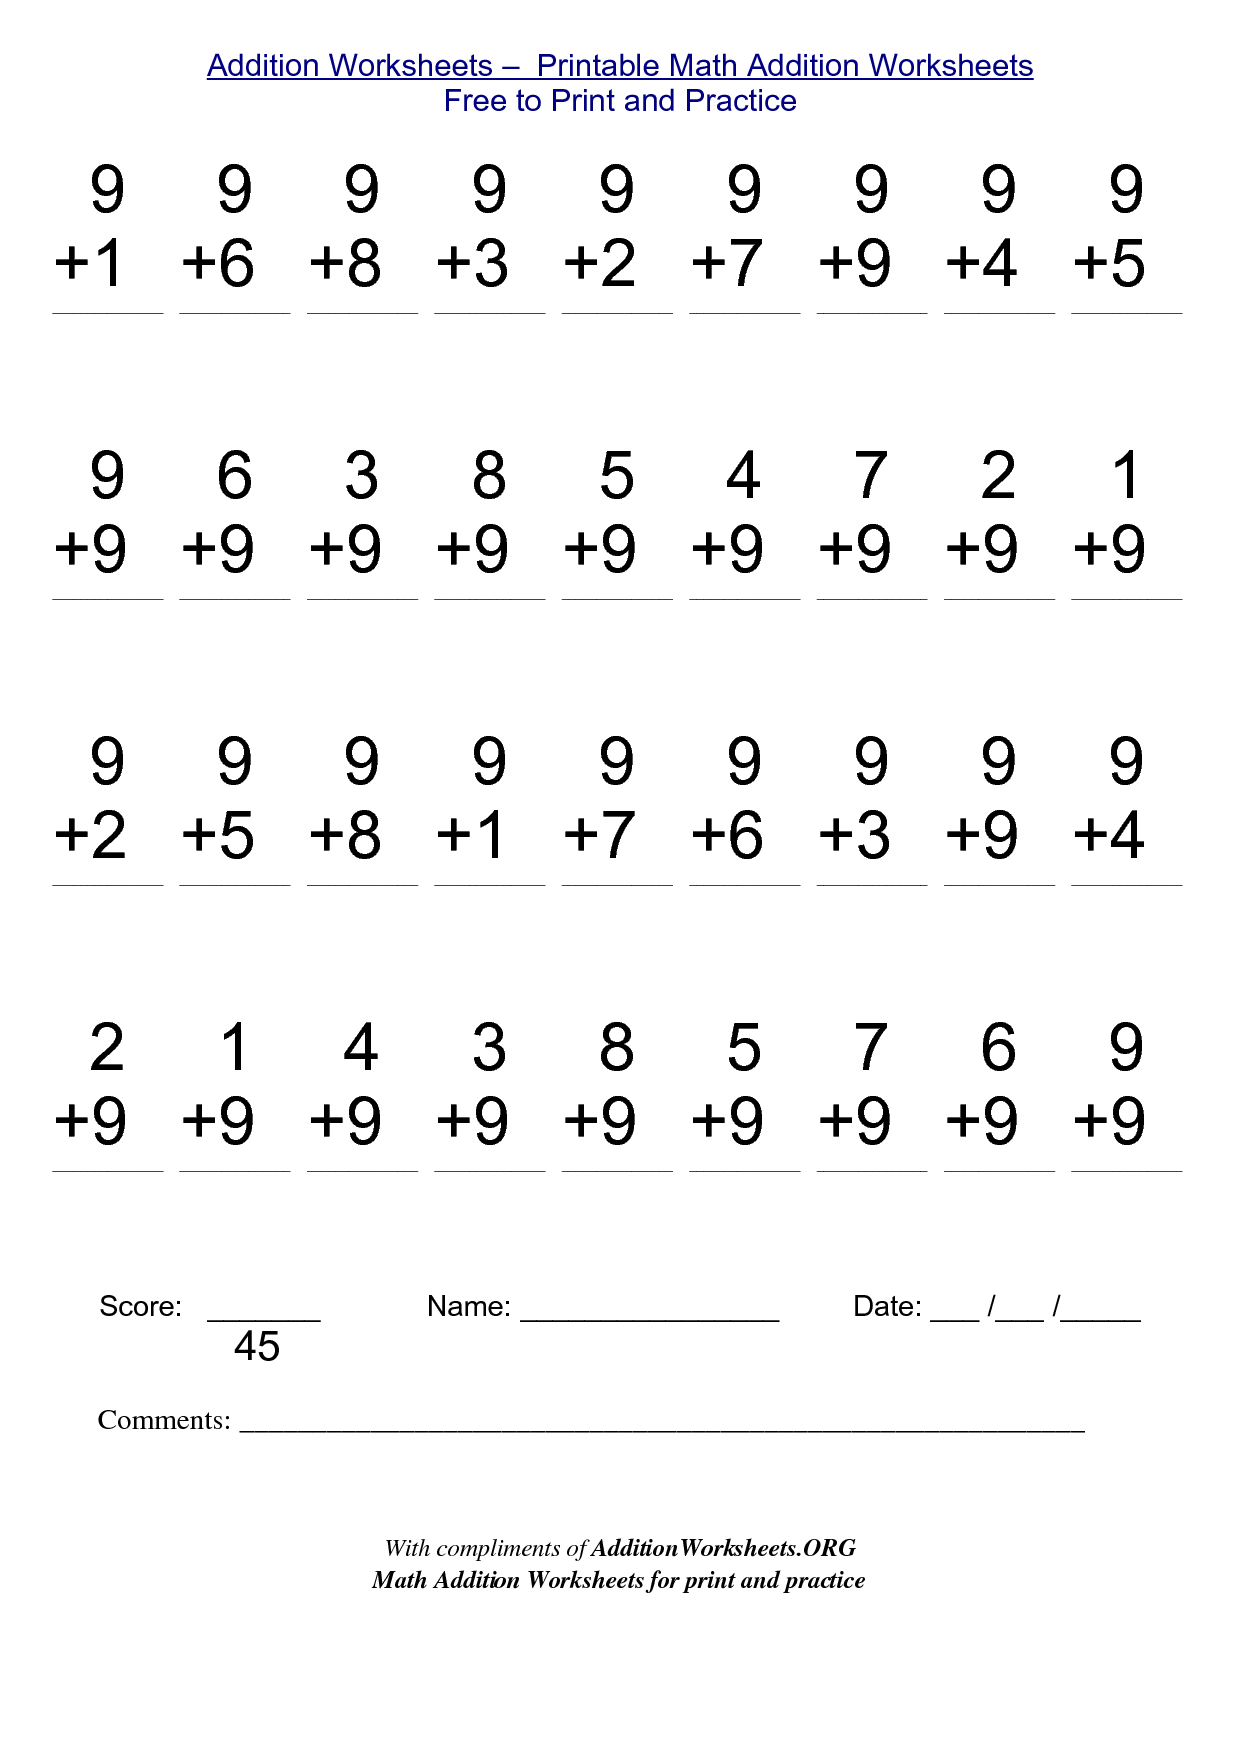 worksheet Printable 1st Grade Math Worksheets 2nd grade stuff to print addition worksheets printable math free print